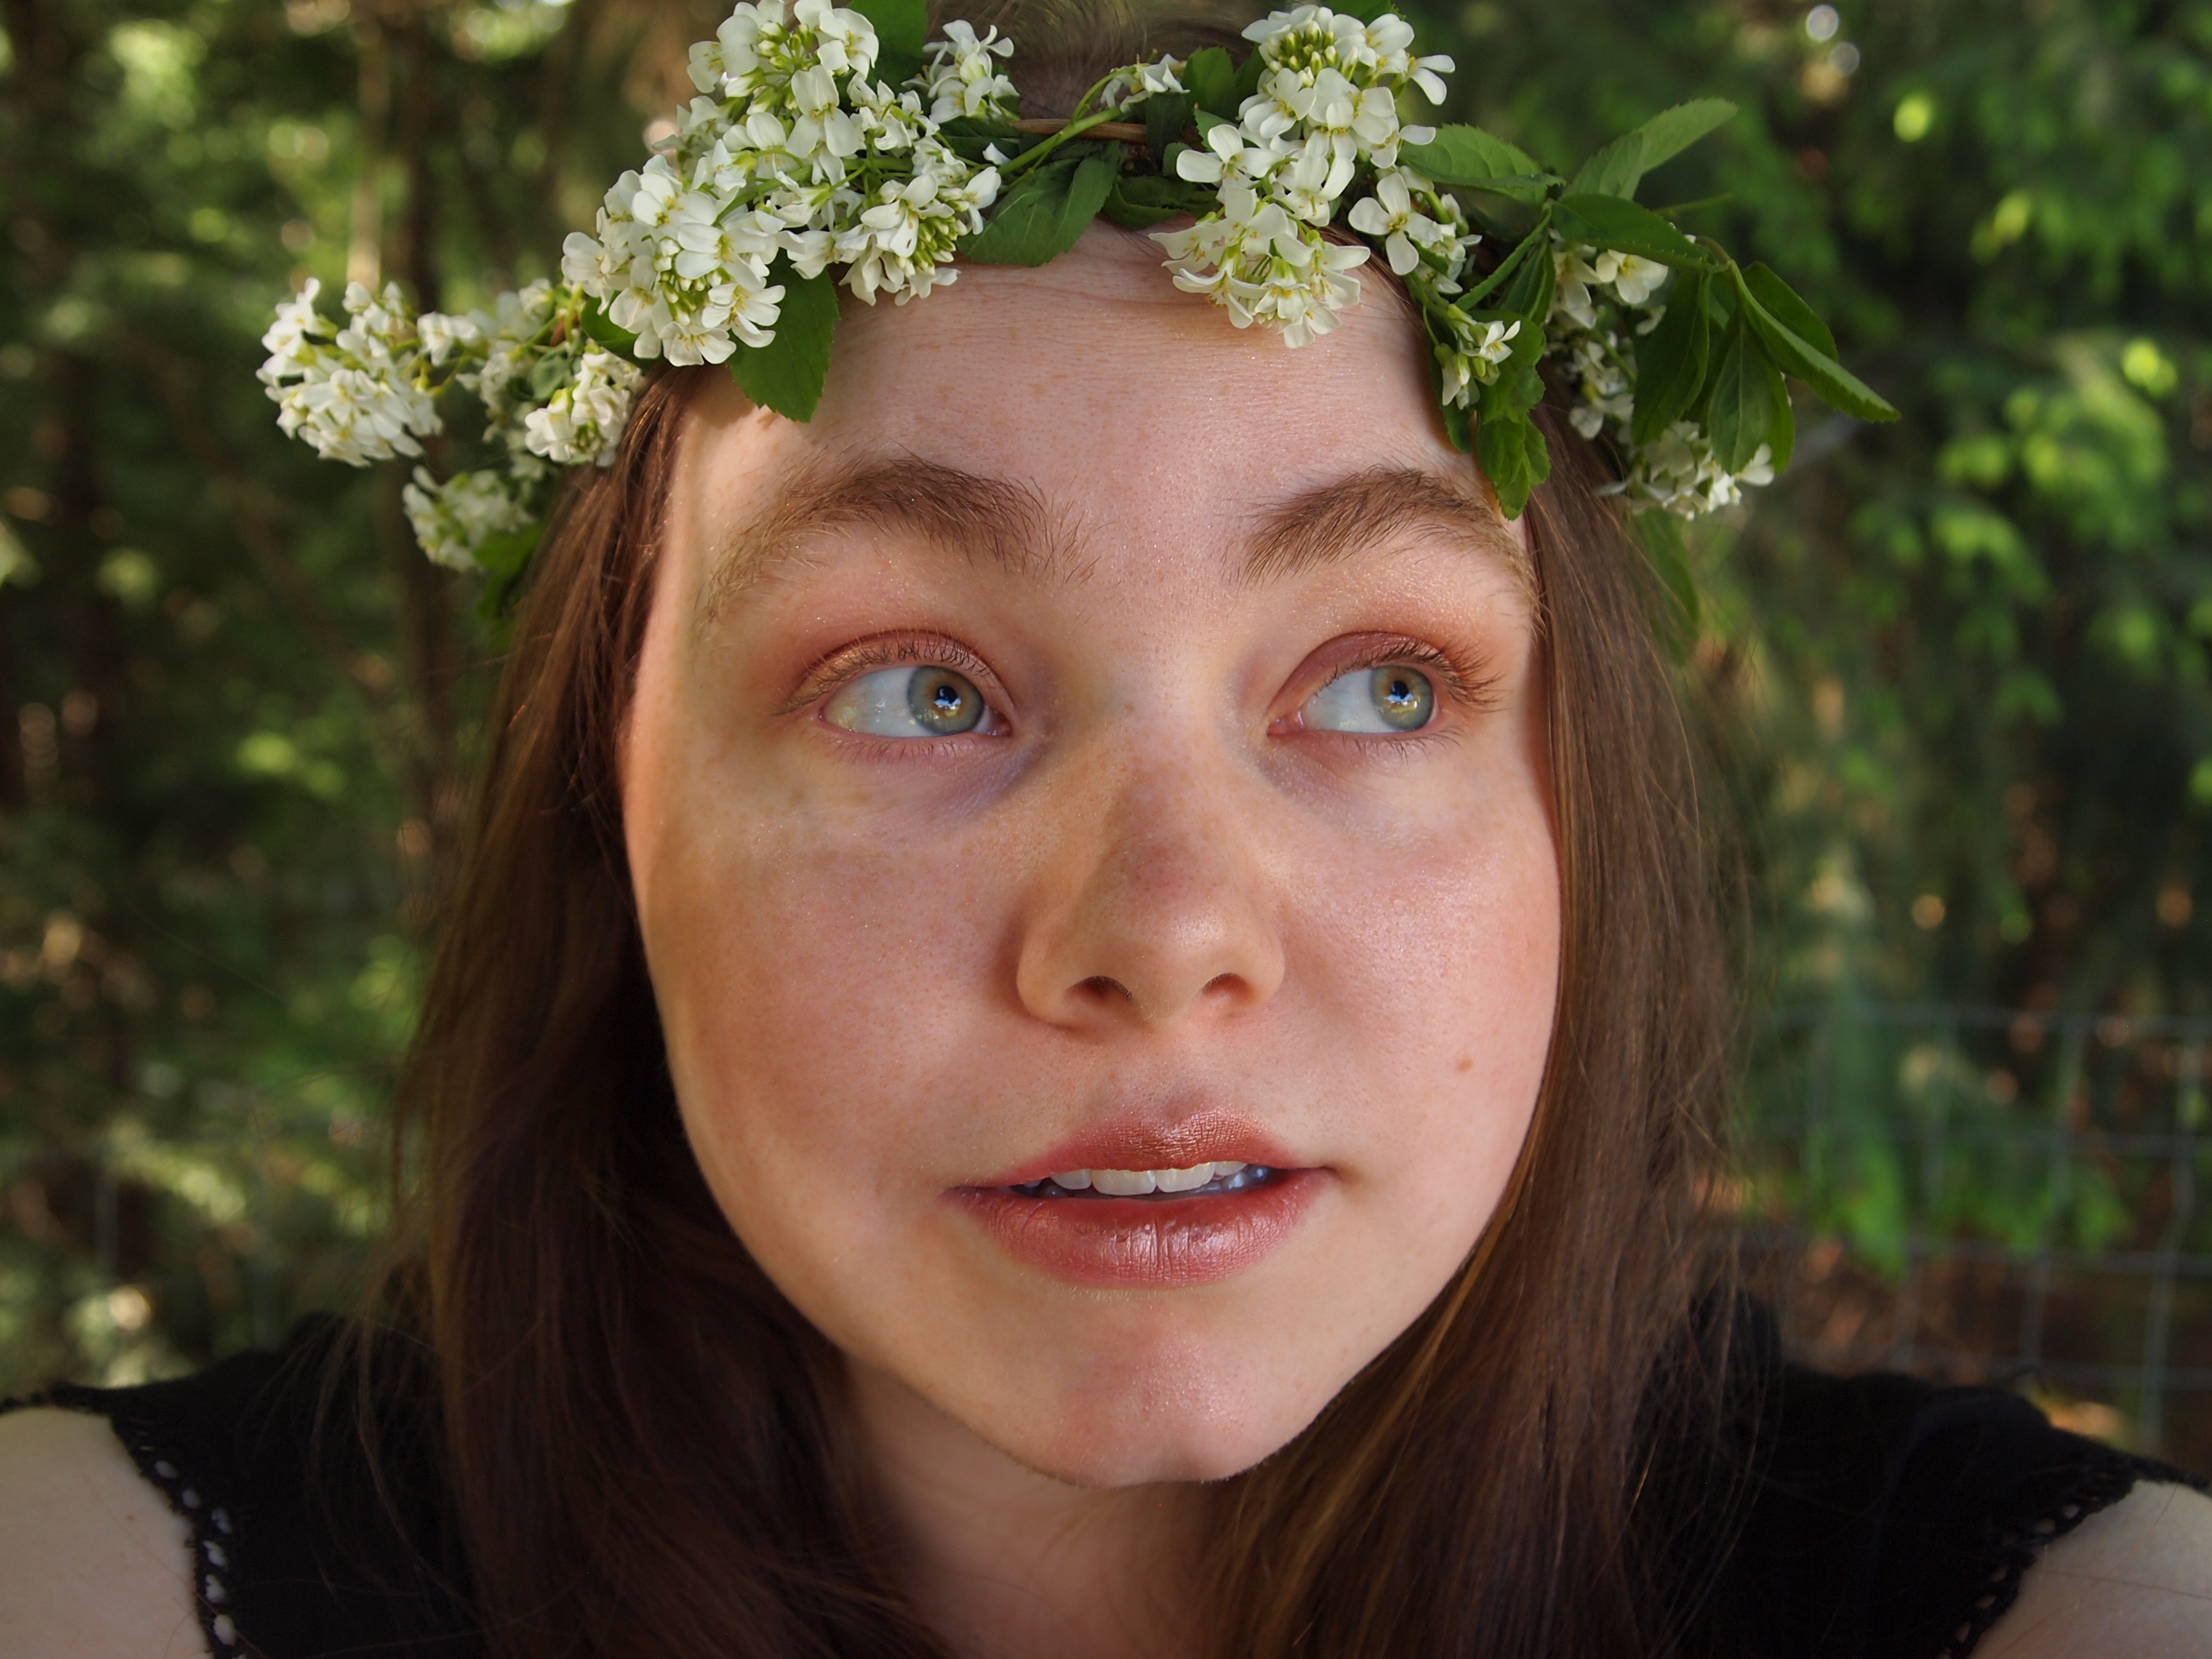 Diy real flower crowns 5 steps with pictures now you have a flower crown made of real flowers enjoy wearing your crown for any sort of event or simply to wear whenever you want izmirmasajfo